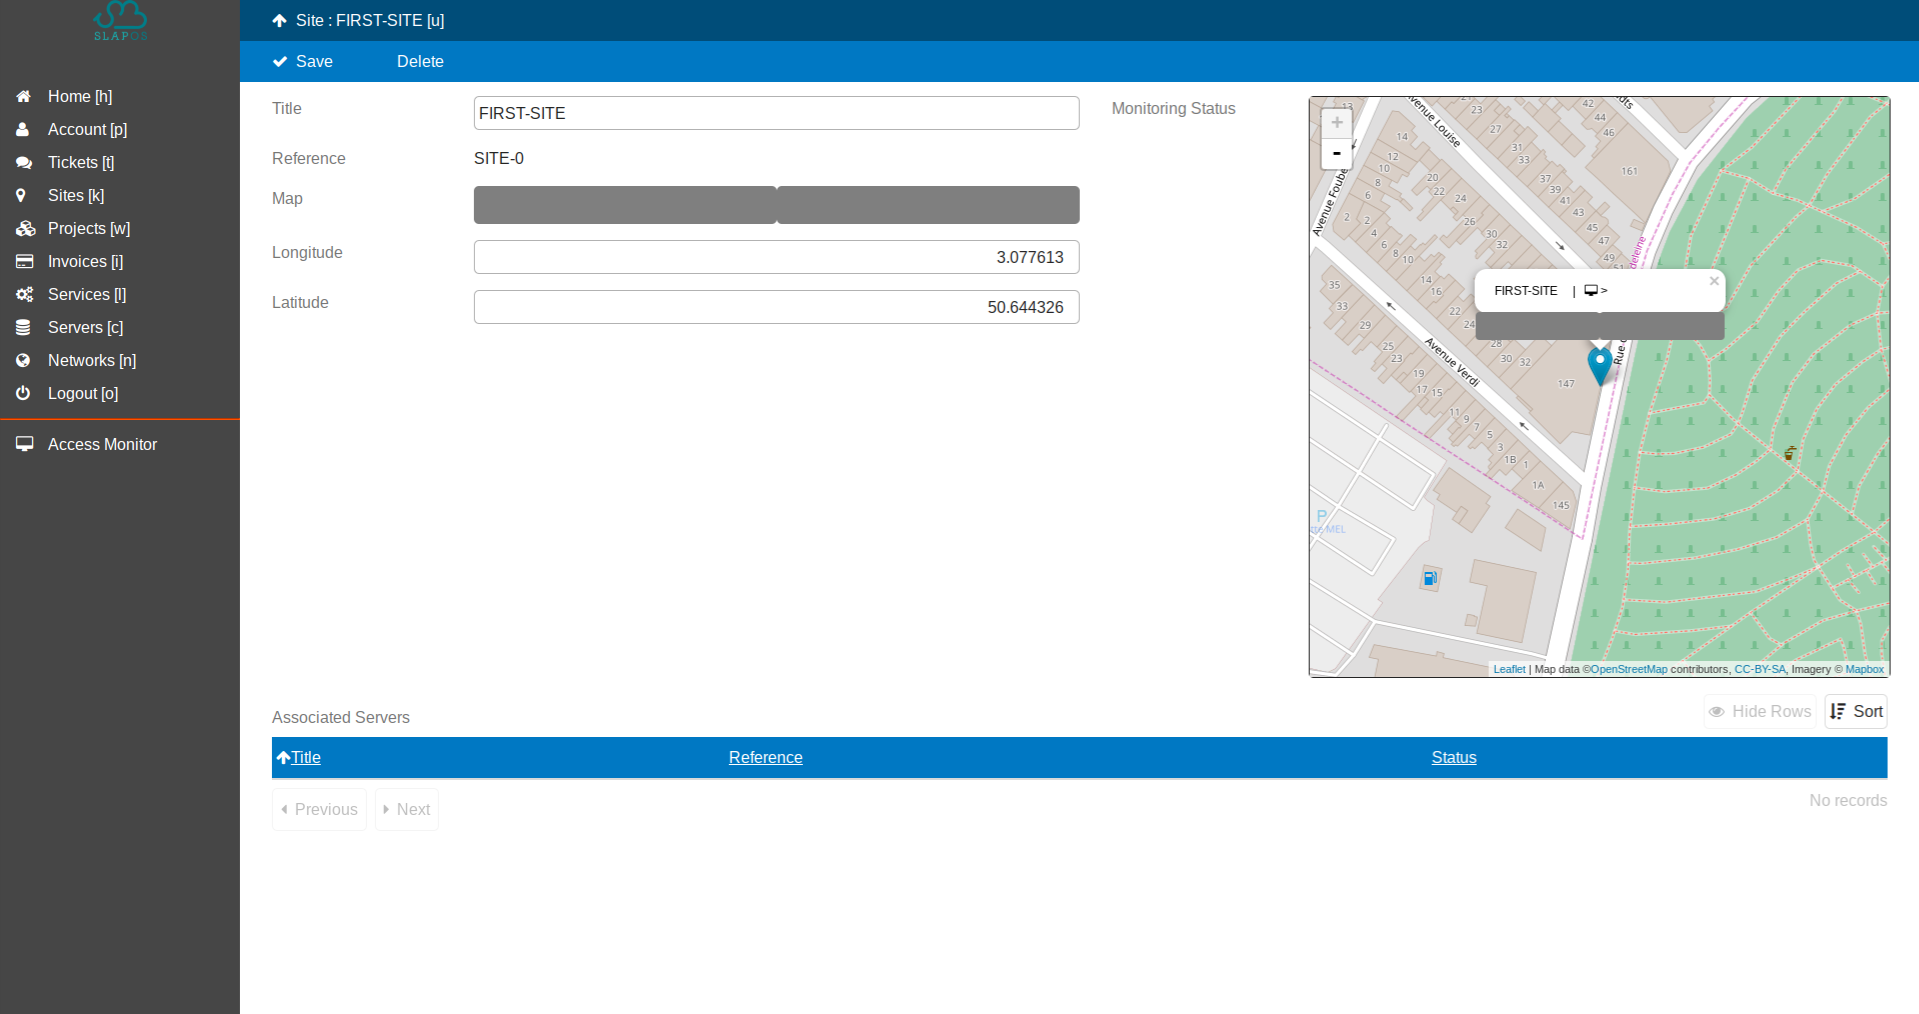 SlapOS Dashboard - Add Site Geocoordinates